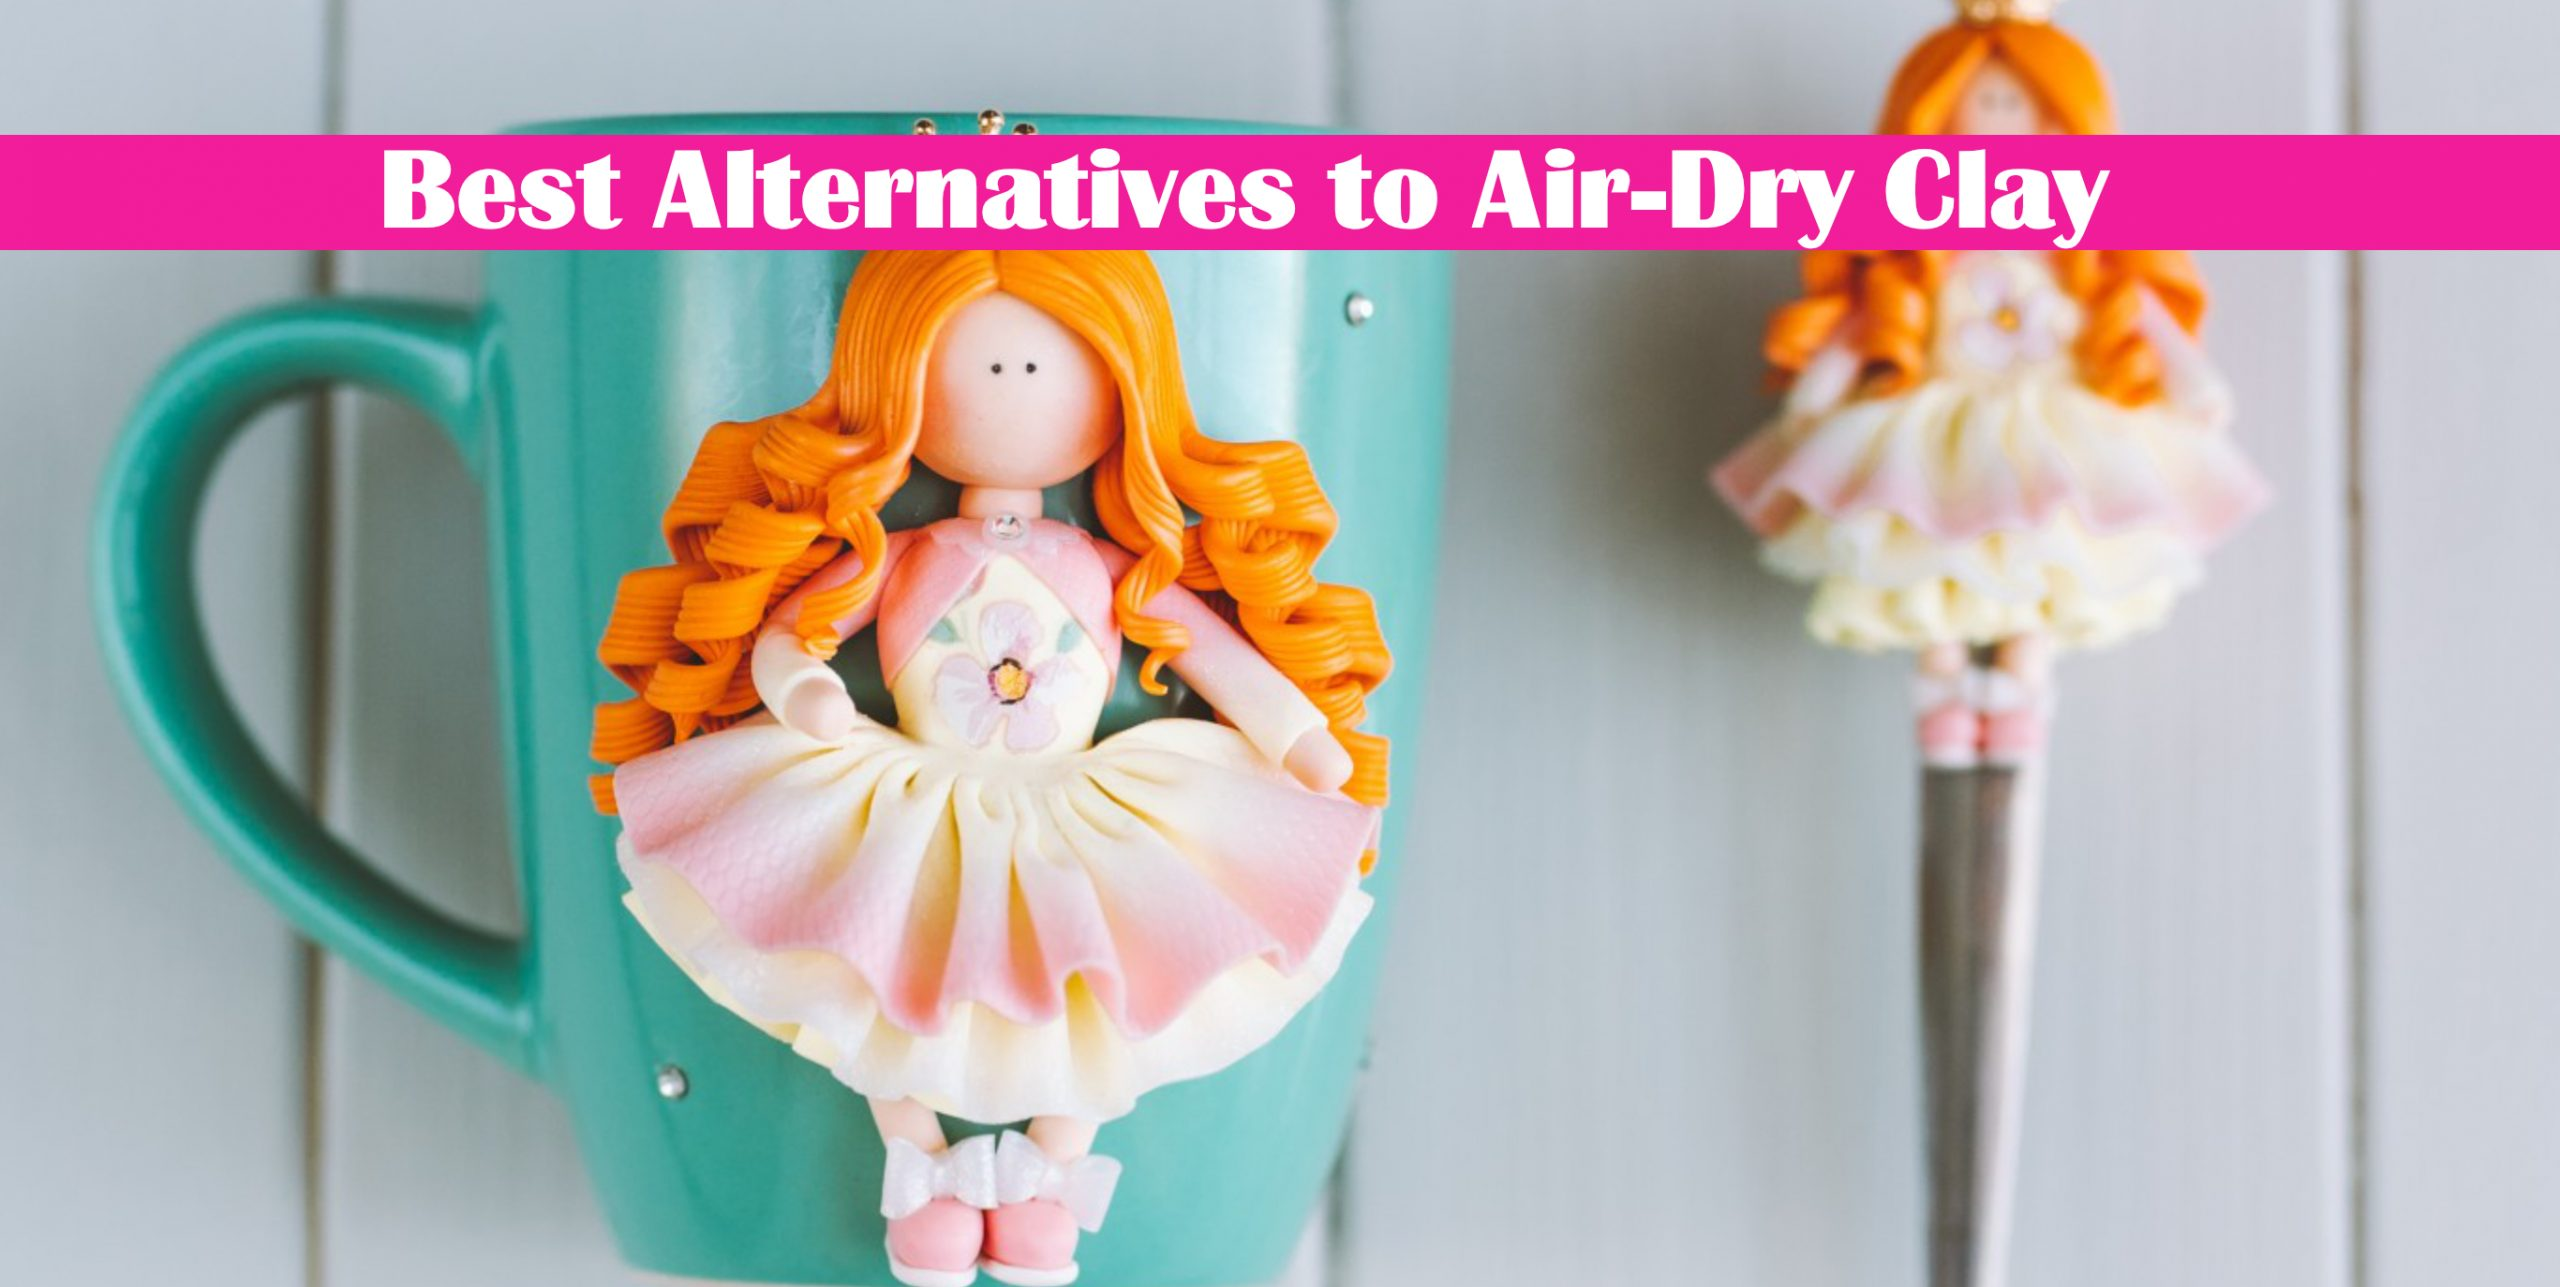 Best Alternatives to Air-Dry Clay